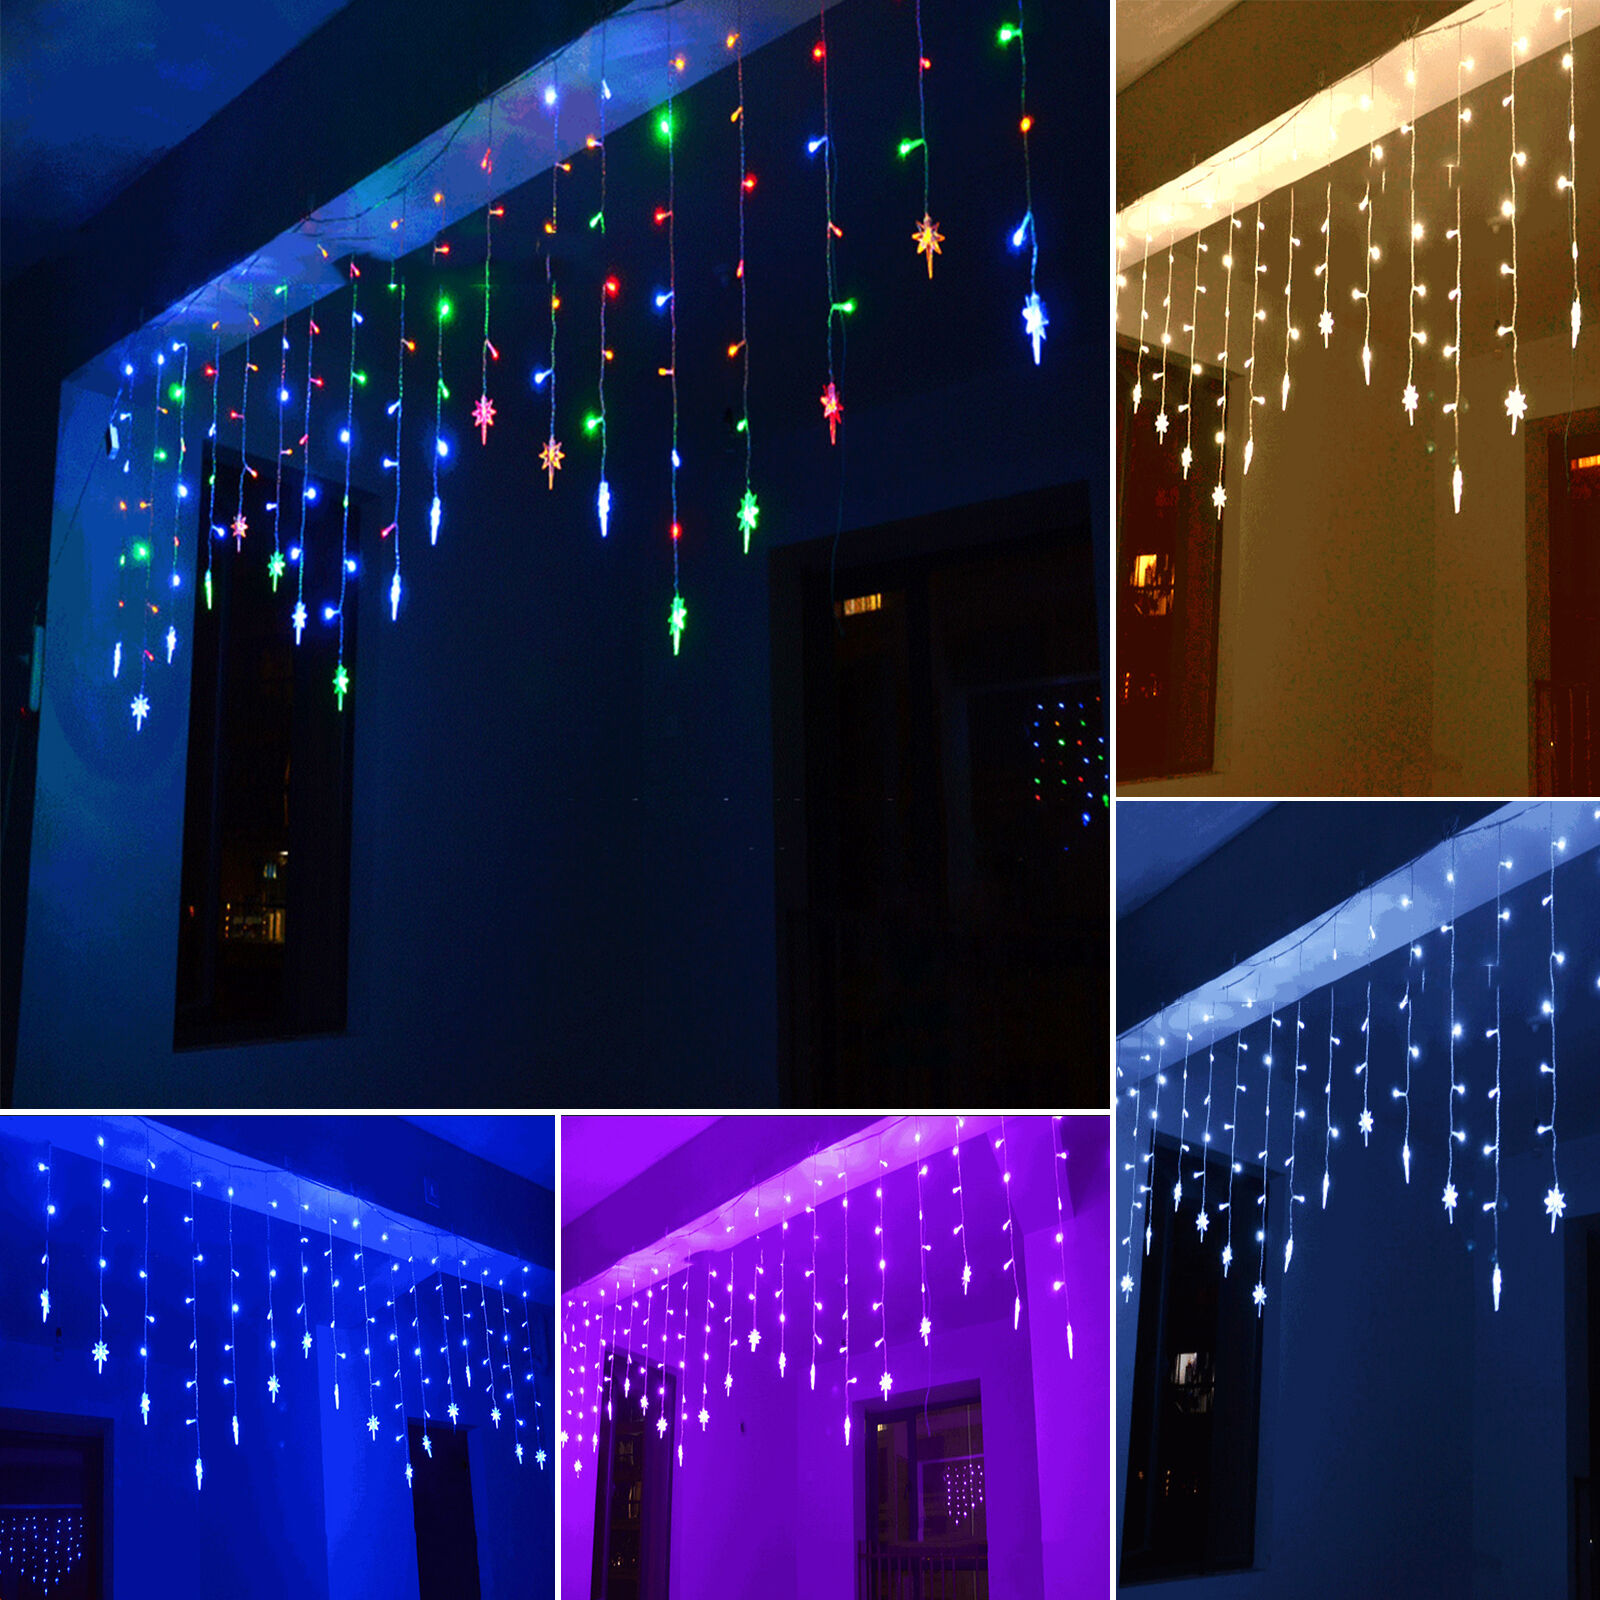 96 led stern lichterkette weihnachten treppe fenster innen au en weihnachtsdeko eur 10 79. Black Bedroom Furniture Sets. Home Design Ideas